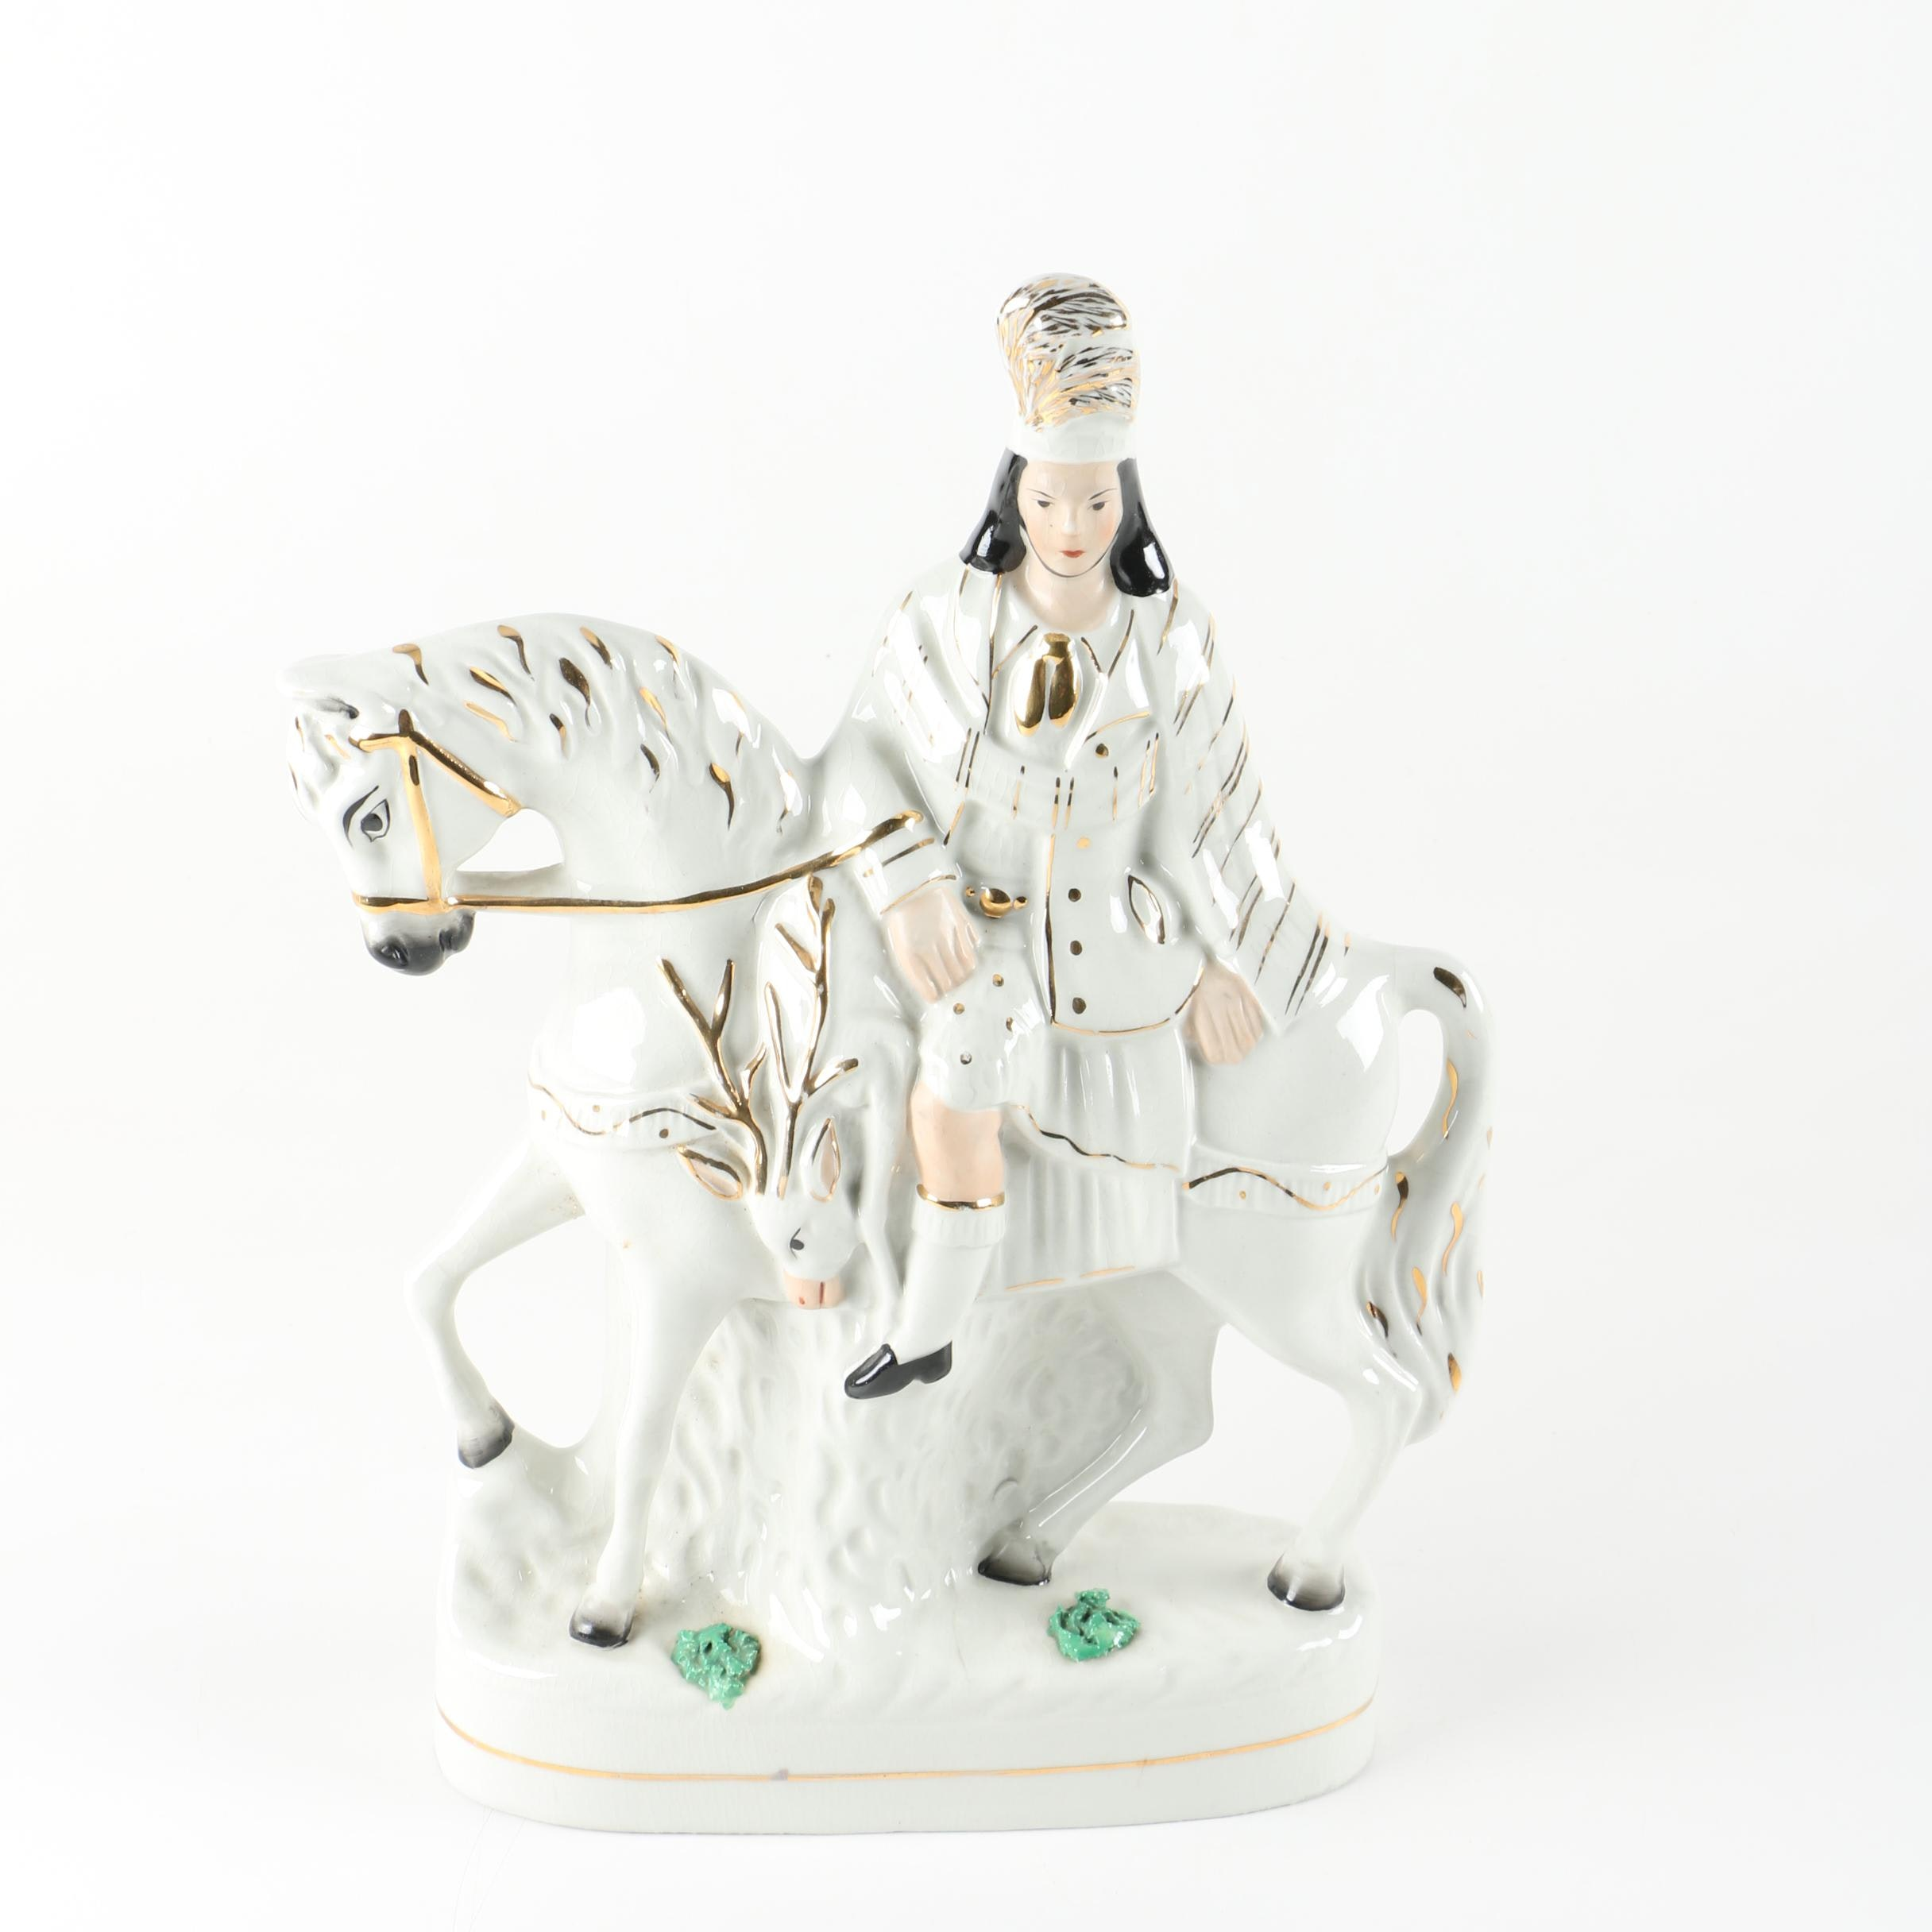 Staffordshire Ware Figurine of Hunter on Horseback with Stag